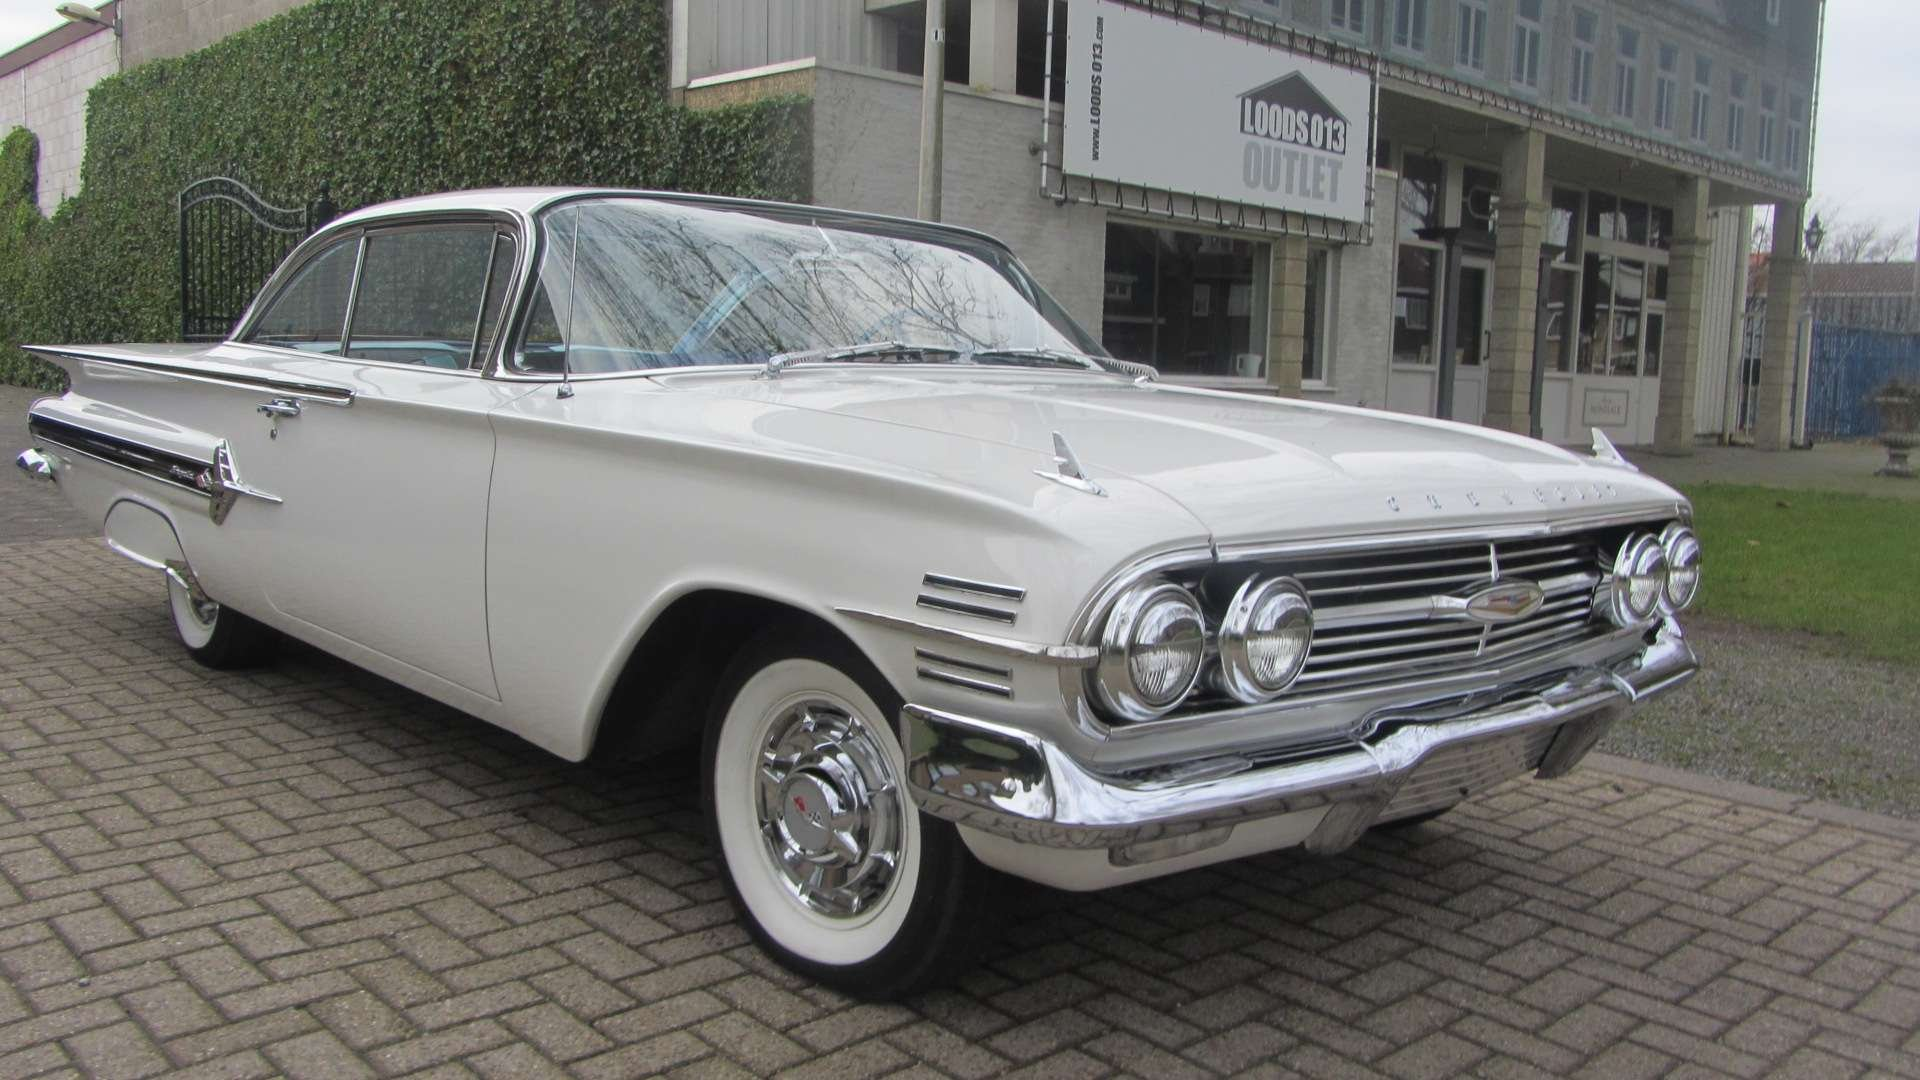 Chevrolet impala Coupe 1960 New Car & 50 USA Classics For Sale (picture 1 of 6)